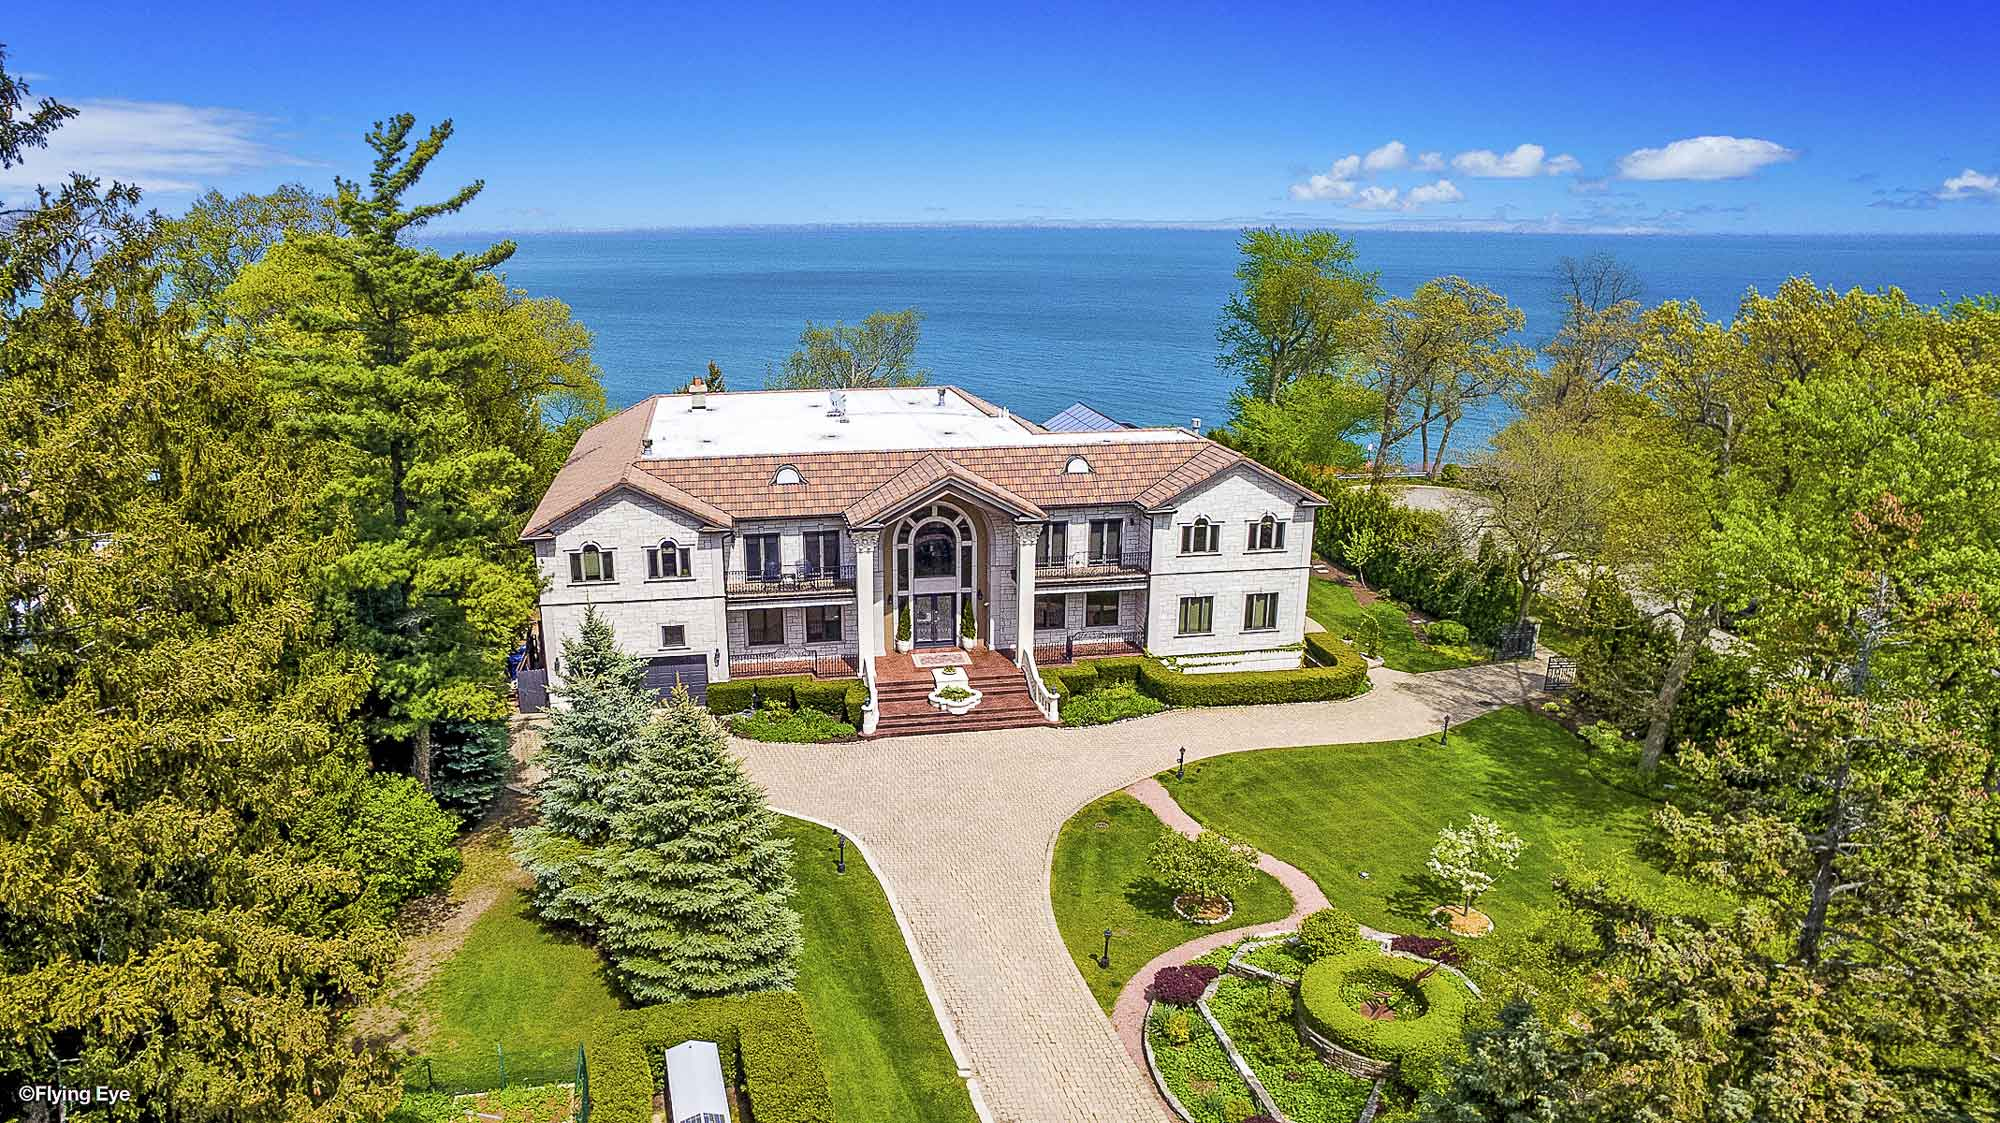 This elegant home in Highland Park was designed with massive arched windows which take advantage of its glorious setting on the shores of Lake Michigan.